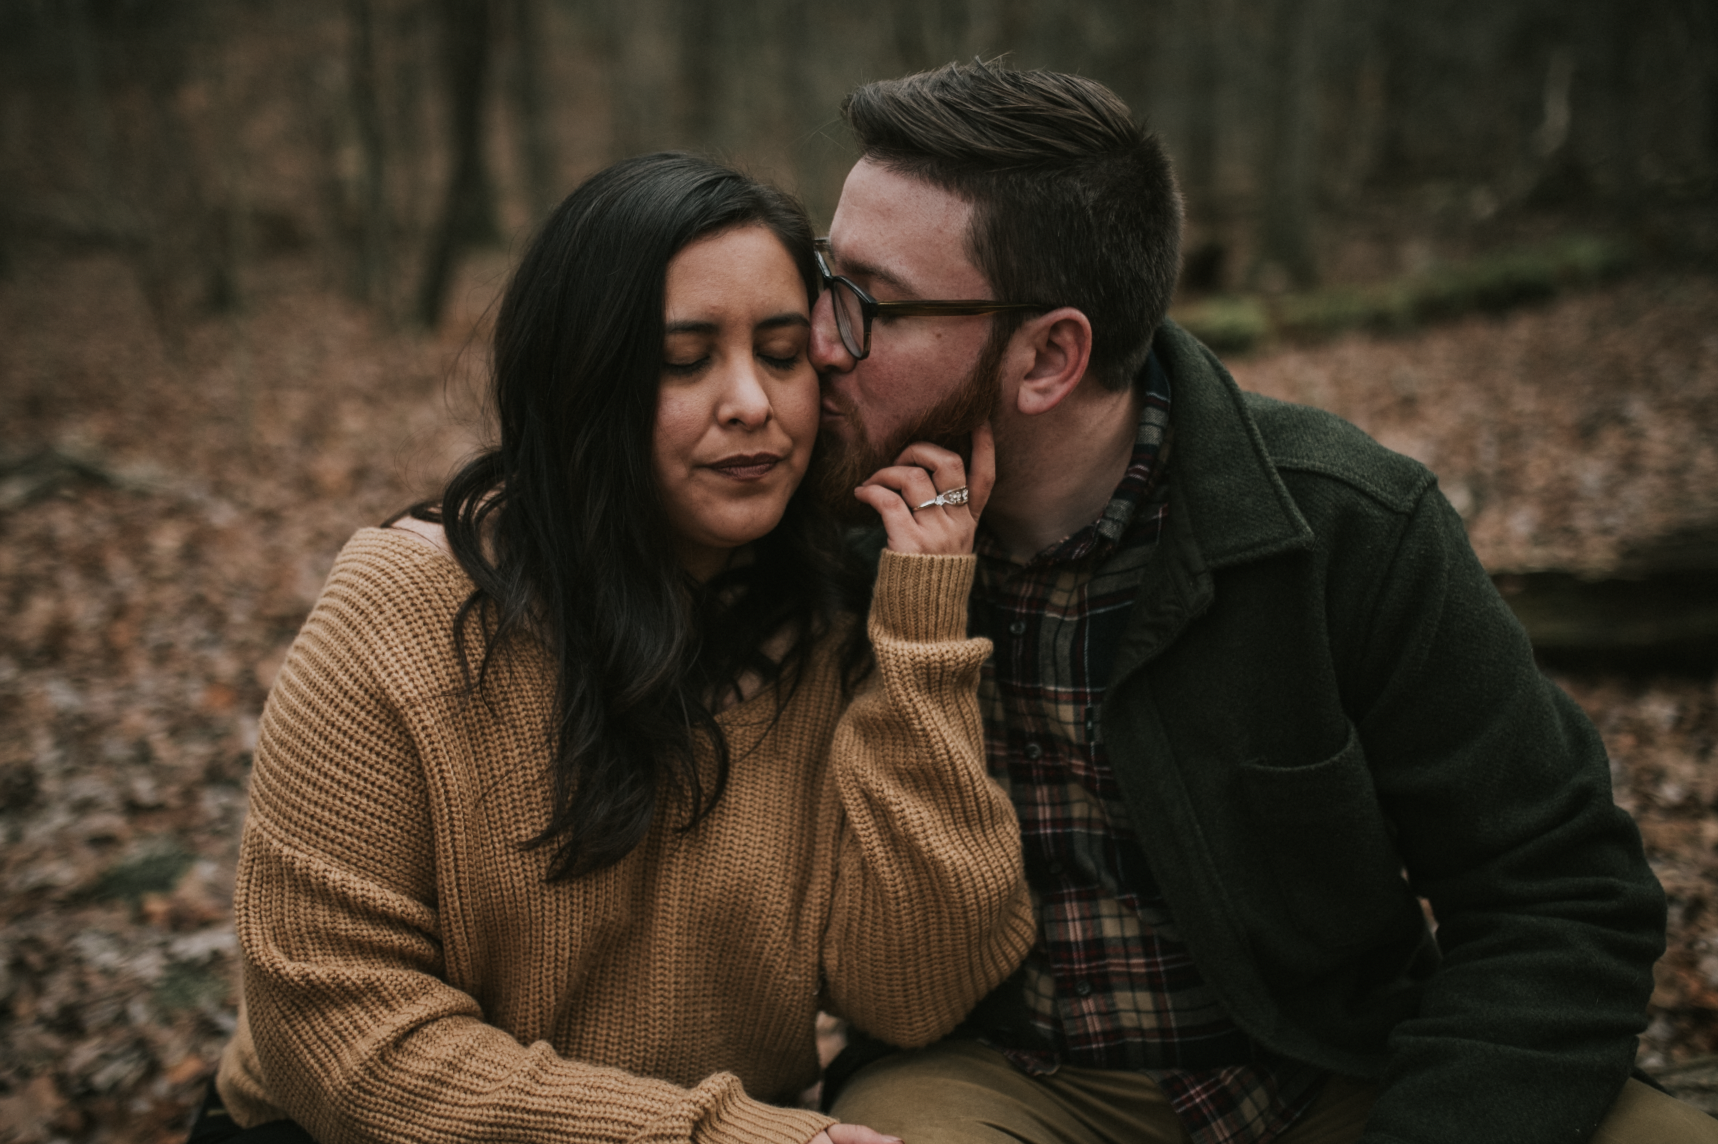 matt-natalia-winter-woods-engagement-session-pennsylvania-wedding-photographer-21